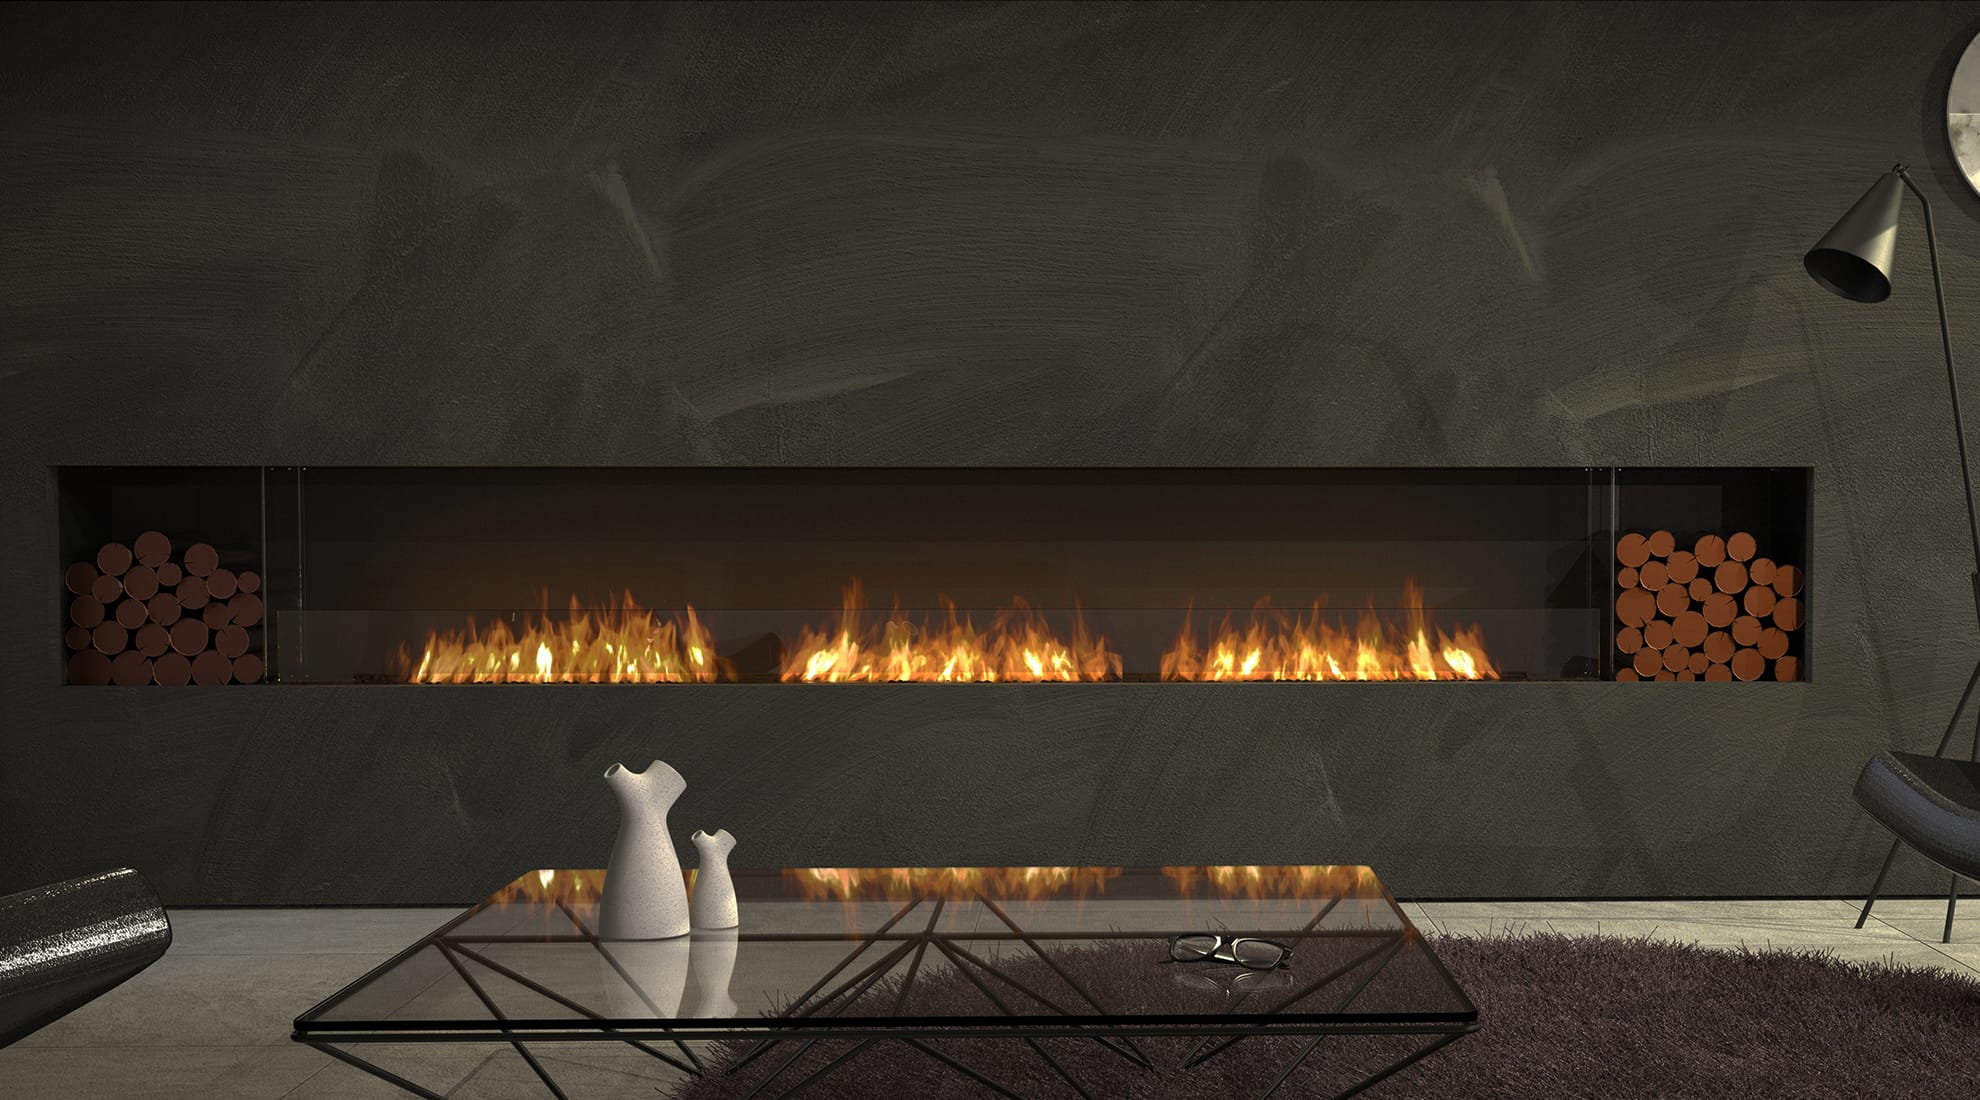 How to Add a Zero-Clearance Fireplace